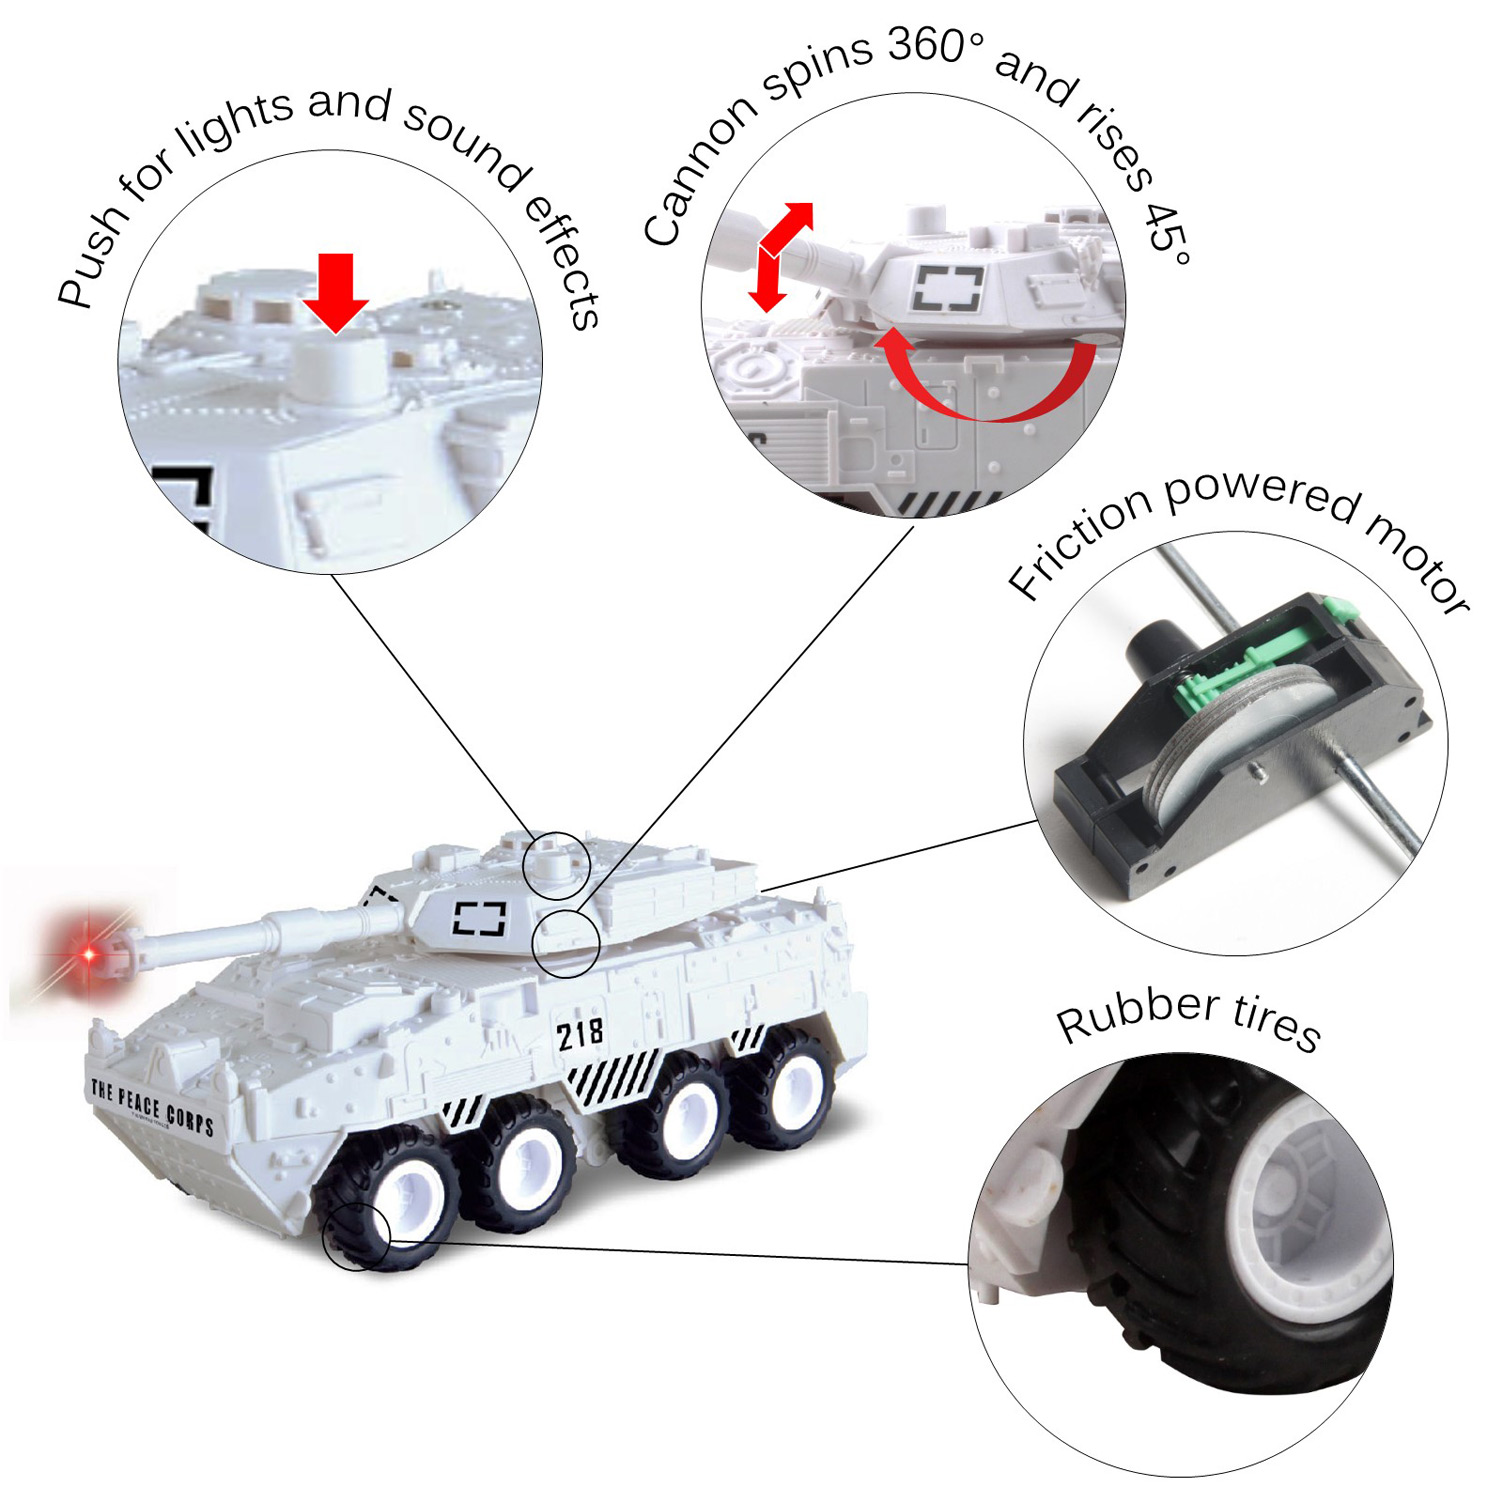 Large Military Battle Tank Toy Friction Powered Push And Go With Lights Sounds Nice Quality Details Pivoting Top Action Play Imagination Army Car Armored Vehicle Perfect Kids Gift Arctic White